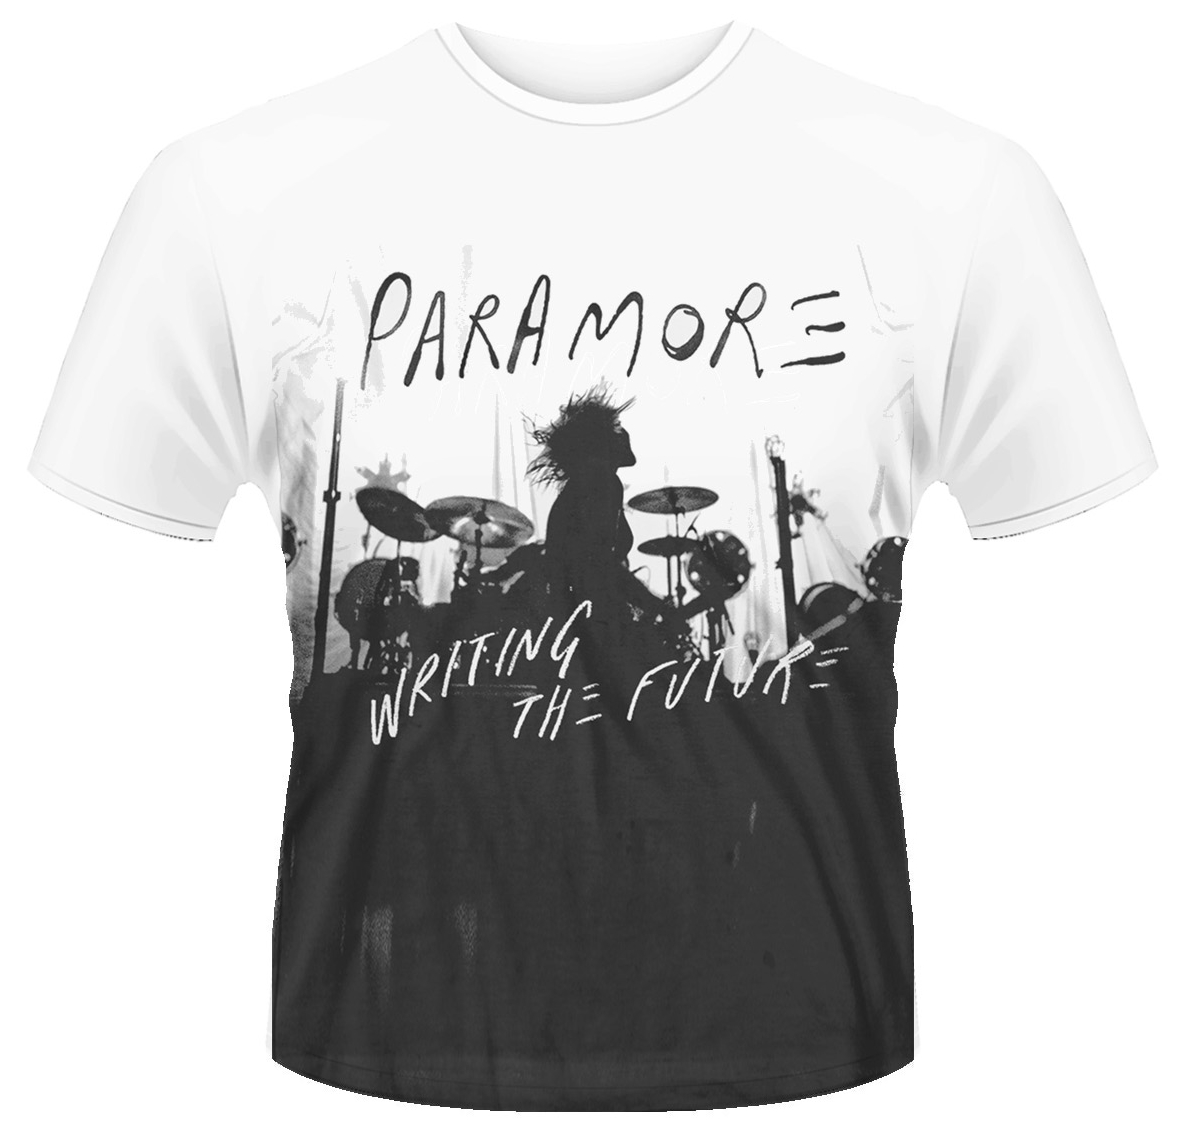 Paramore clothing store